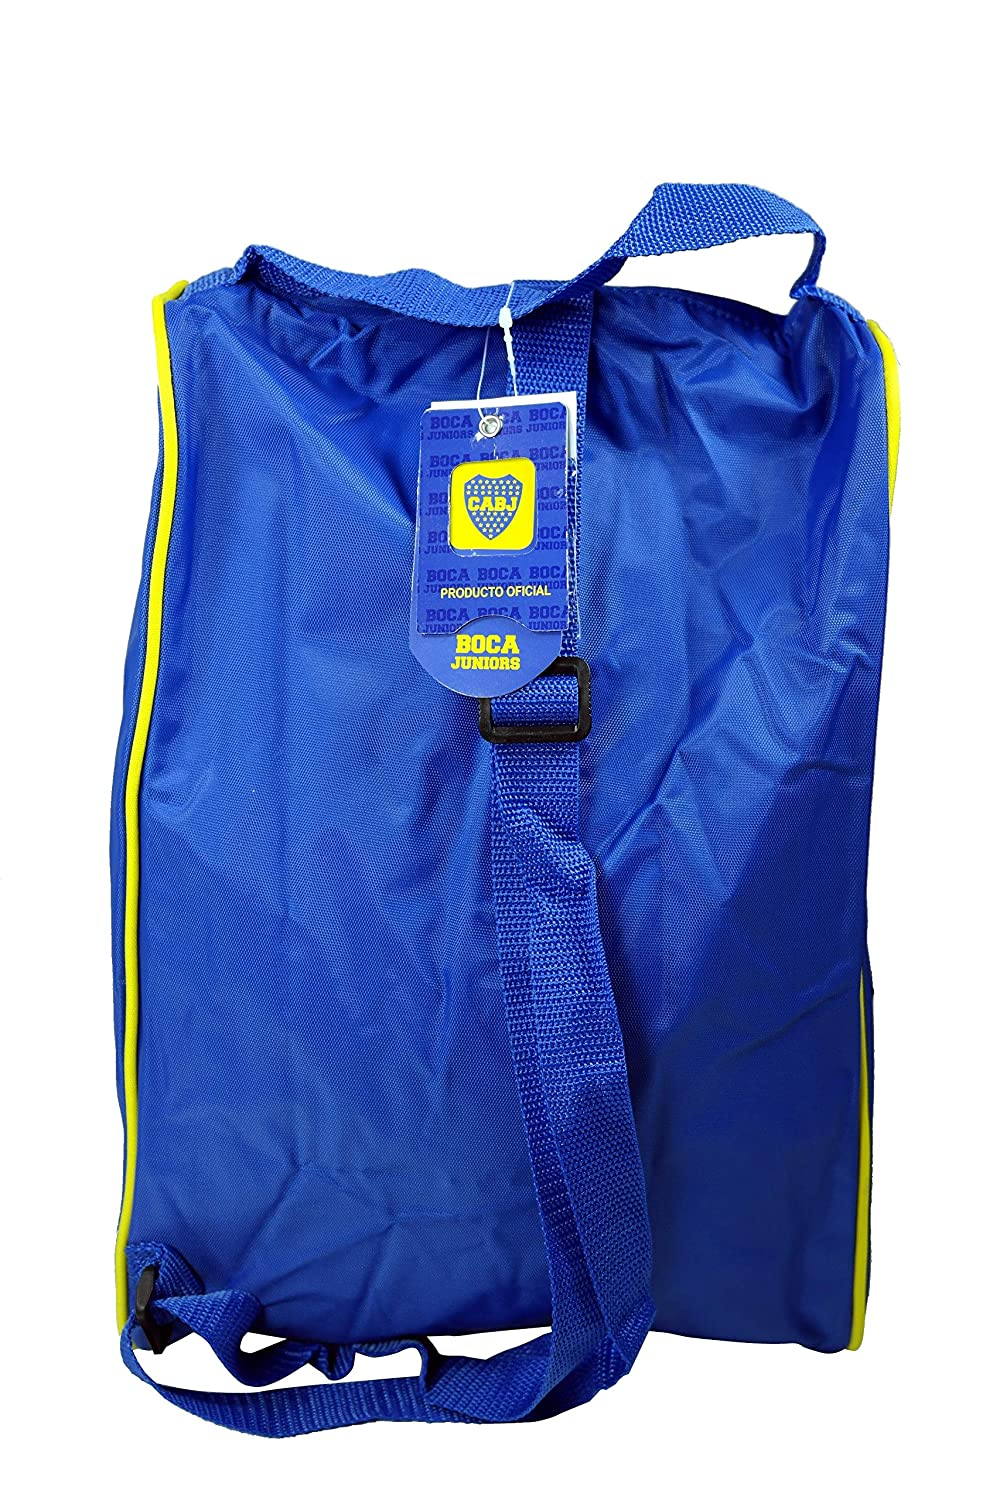 fb56bc77e57 Amazon.com   Rhinox Boca Juniors CABJ Authentic Official Licensed Product  Soccer Bag - 001   Sports   Outdoors